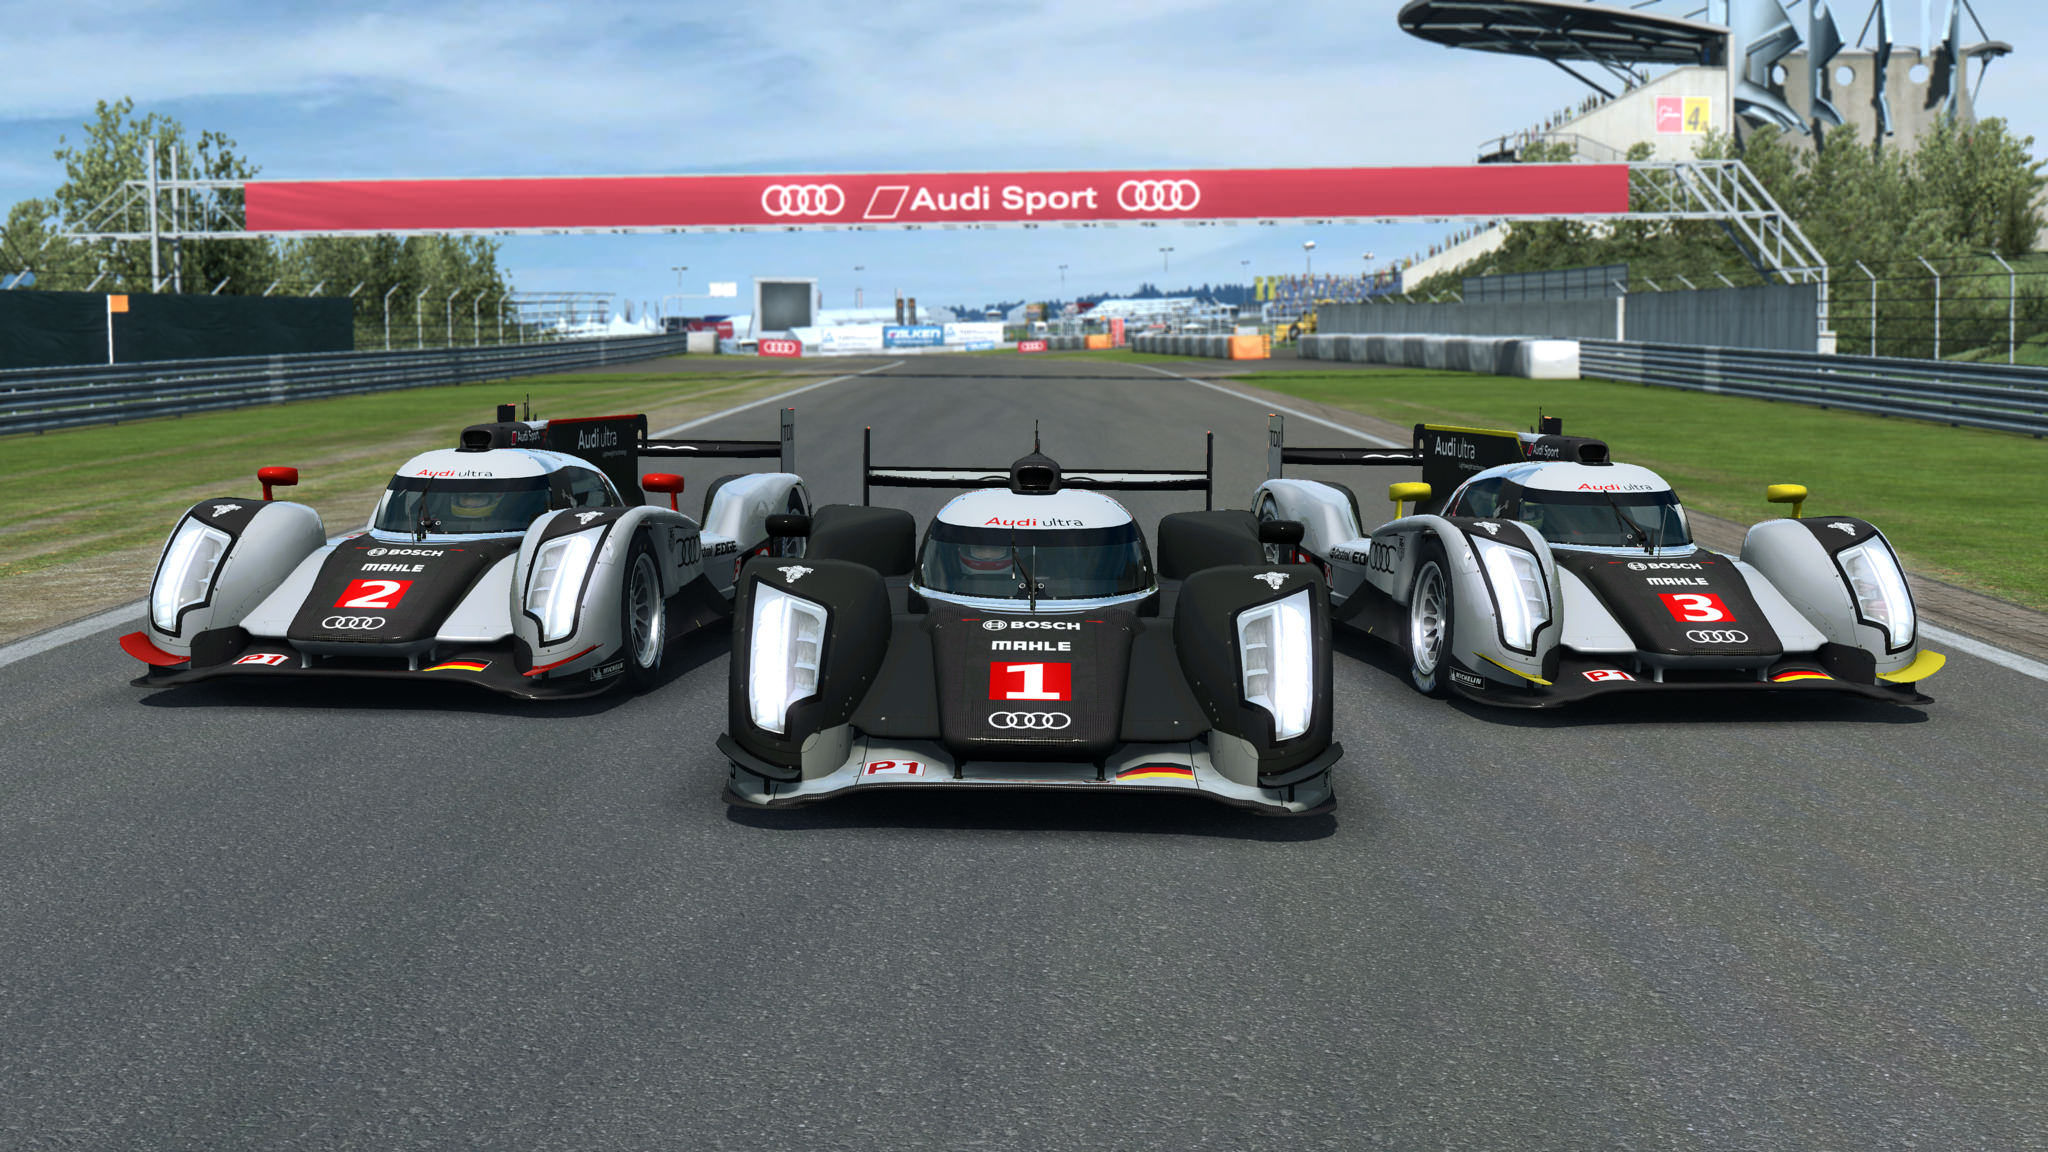 R3e Audi R18 Lmp1 Car Now Available Virtualr Net Sim Racing News